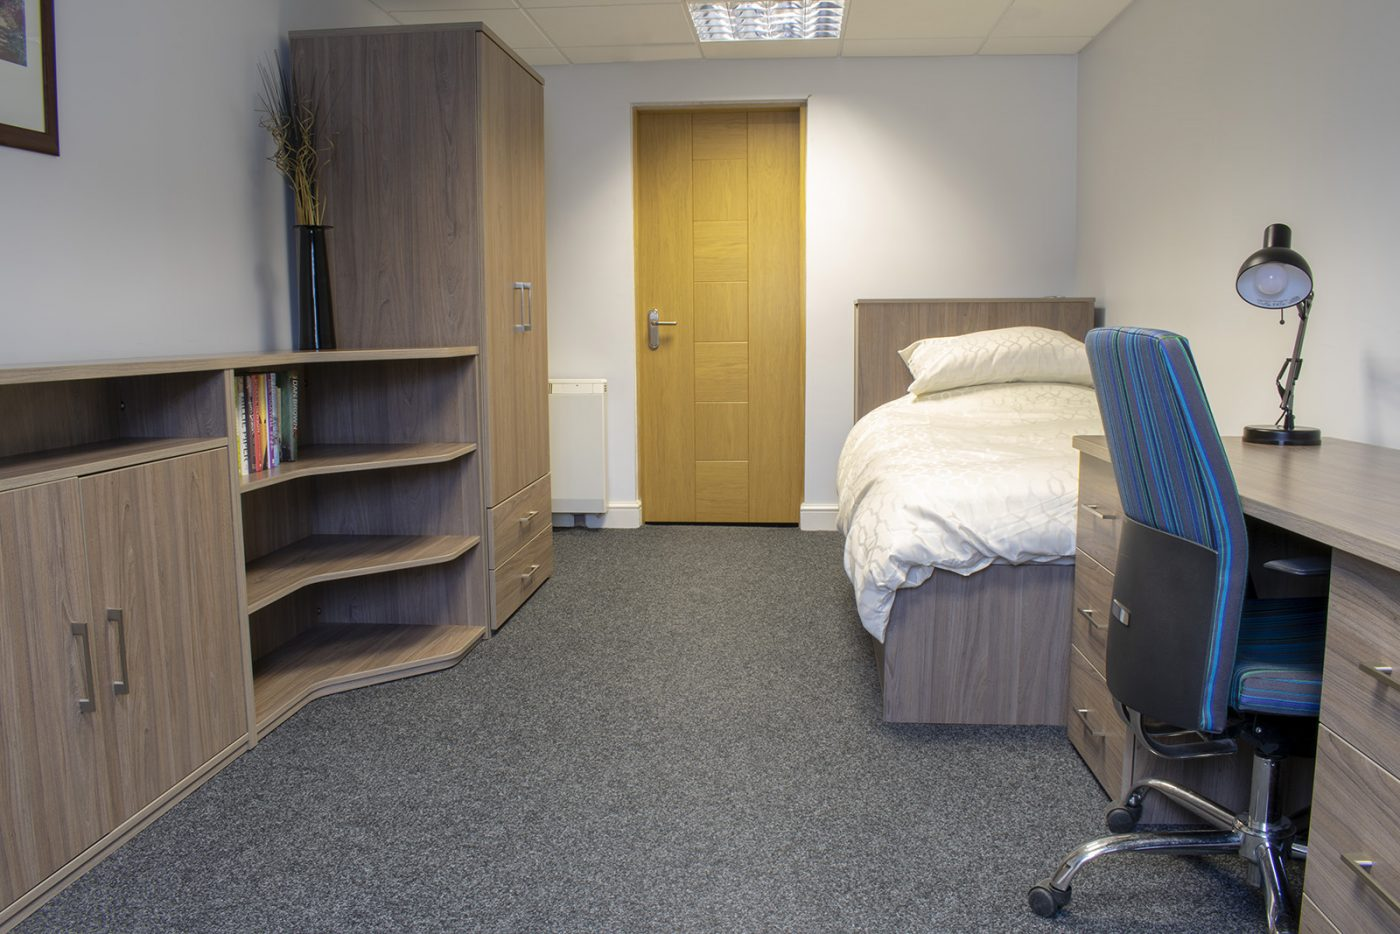 accommodation furniture, residential furniture, bedroom furniture